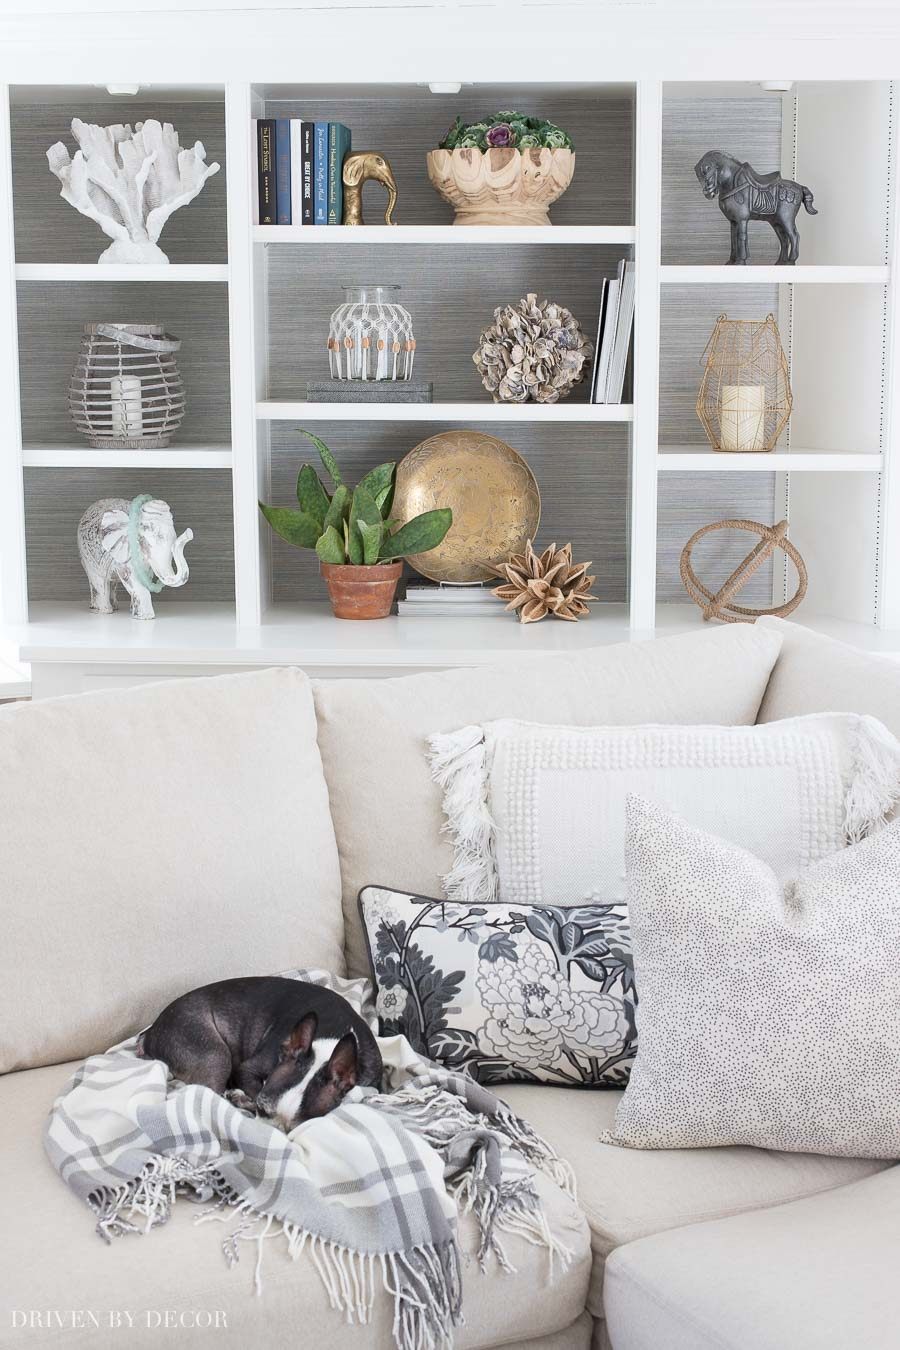 How To Decorate Shelves & Bookcases: Simple Formulas That